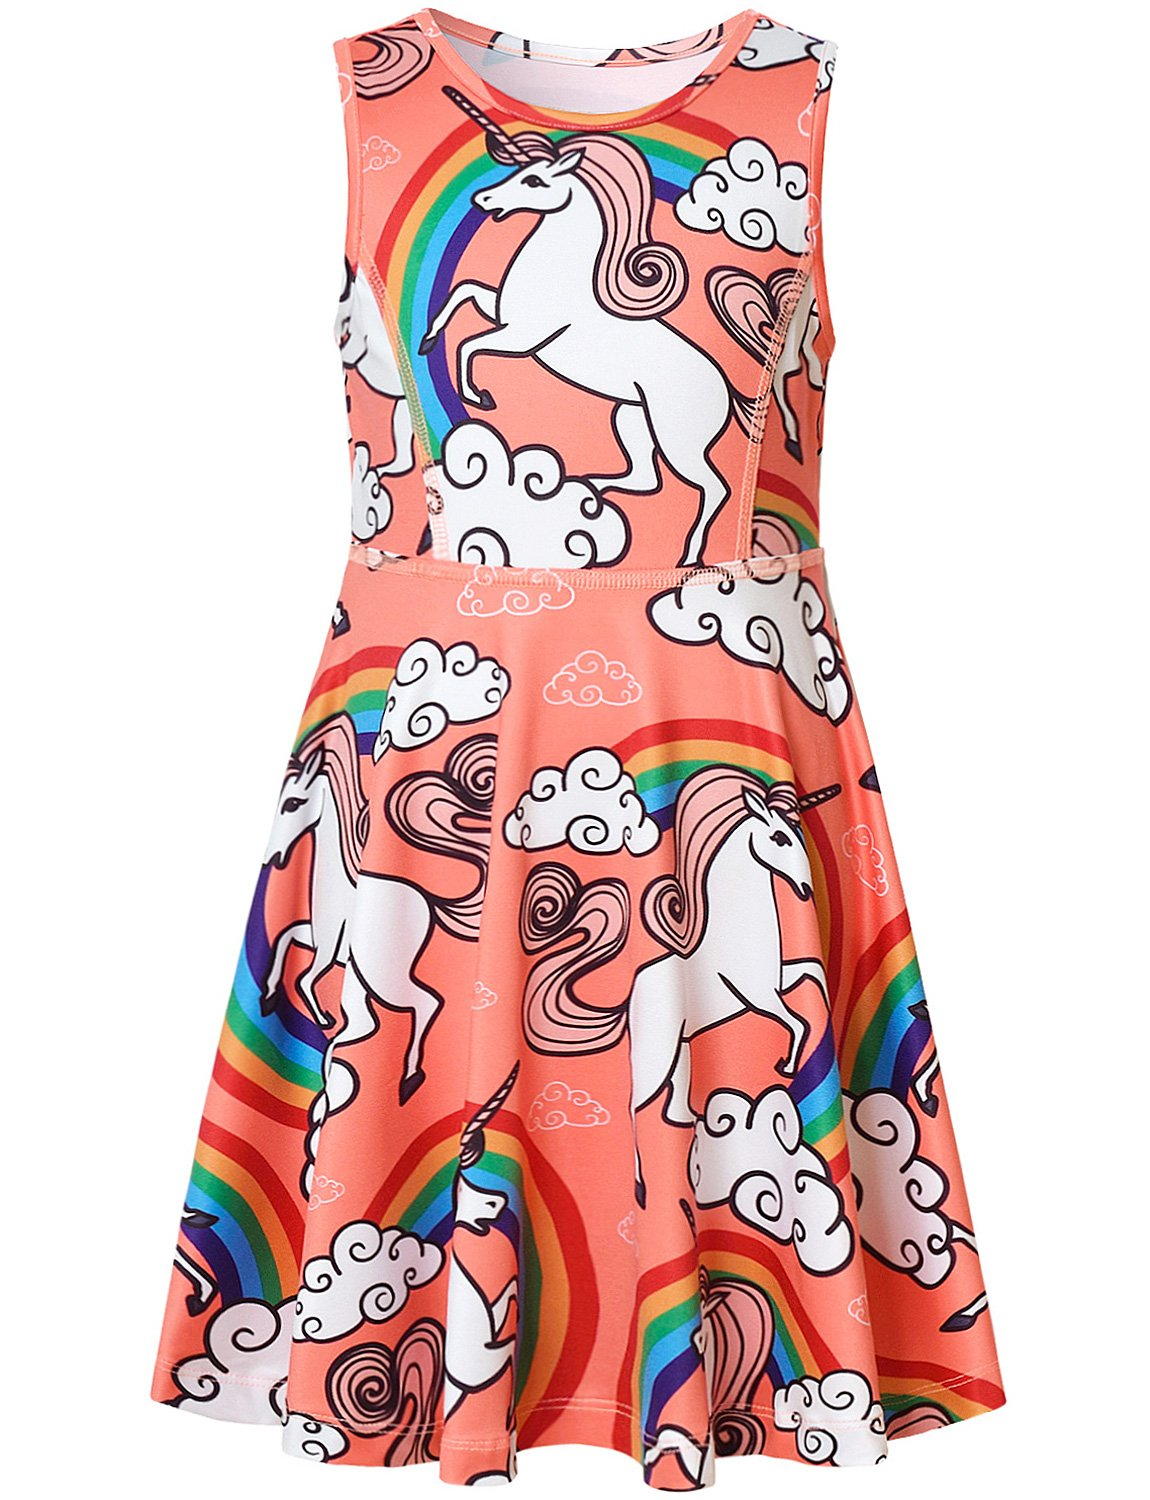 Pink Unicorn Dress for Girls Kids Happy Birthday Gifts